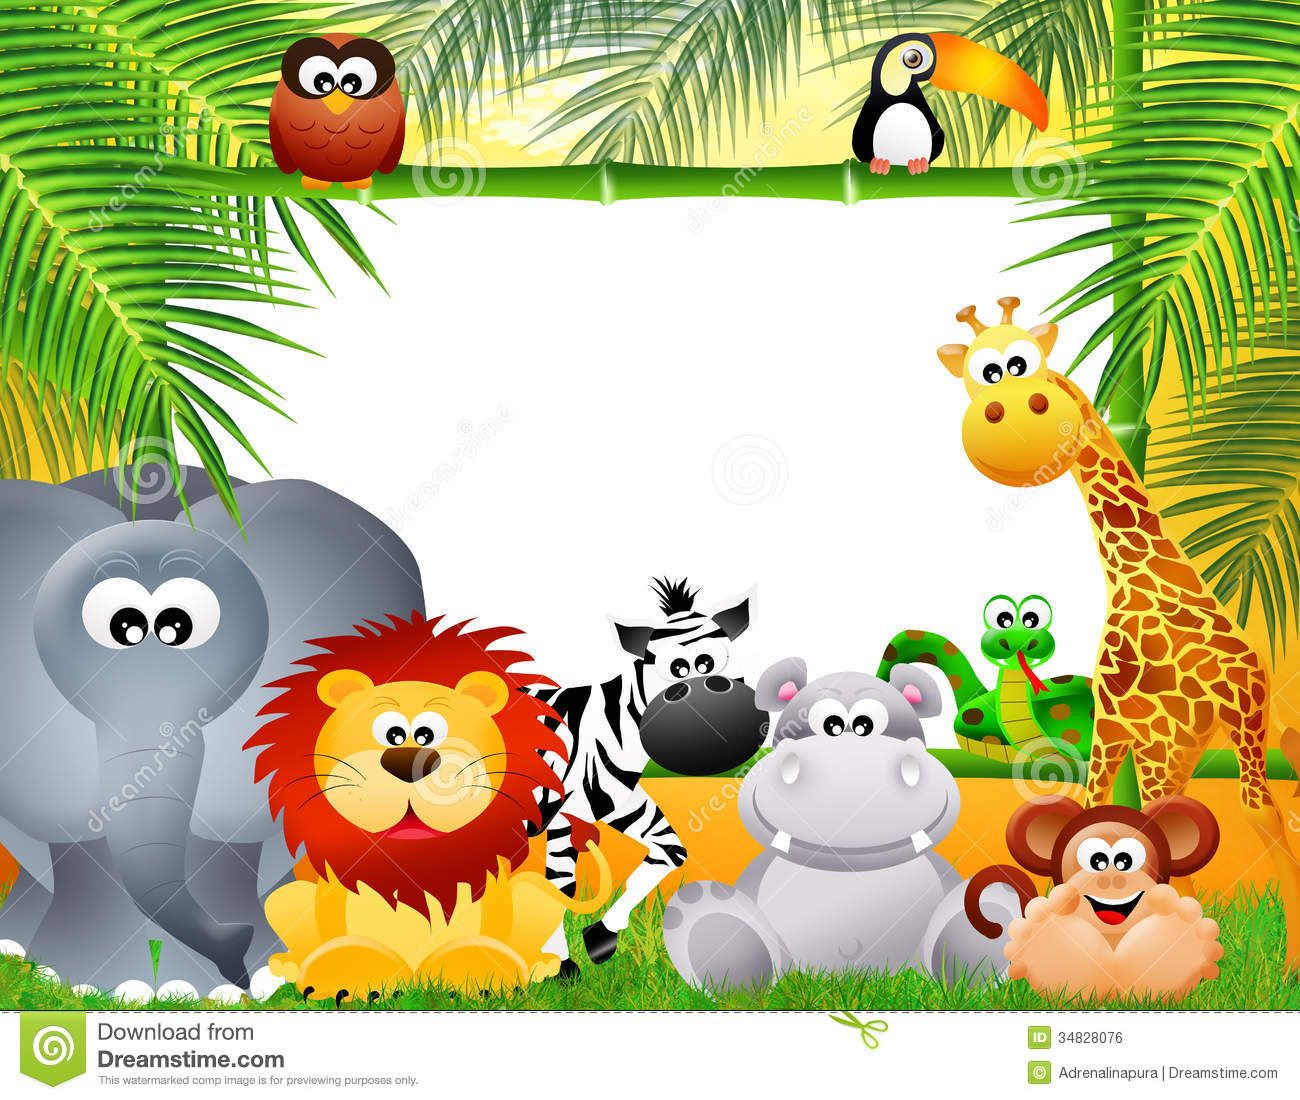 Zoo Animals Cartoon Zoo Animal Coloring Pages Cartoon Zoo Animals Cartoon Animals